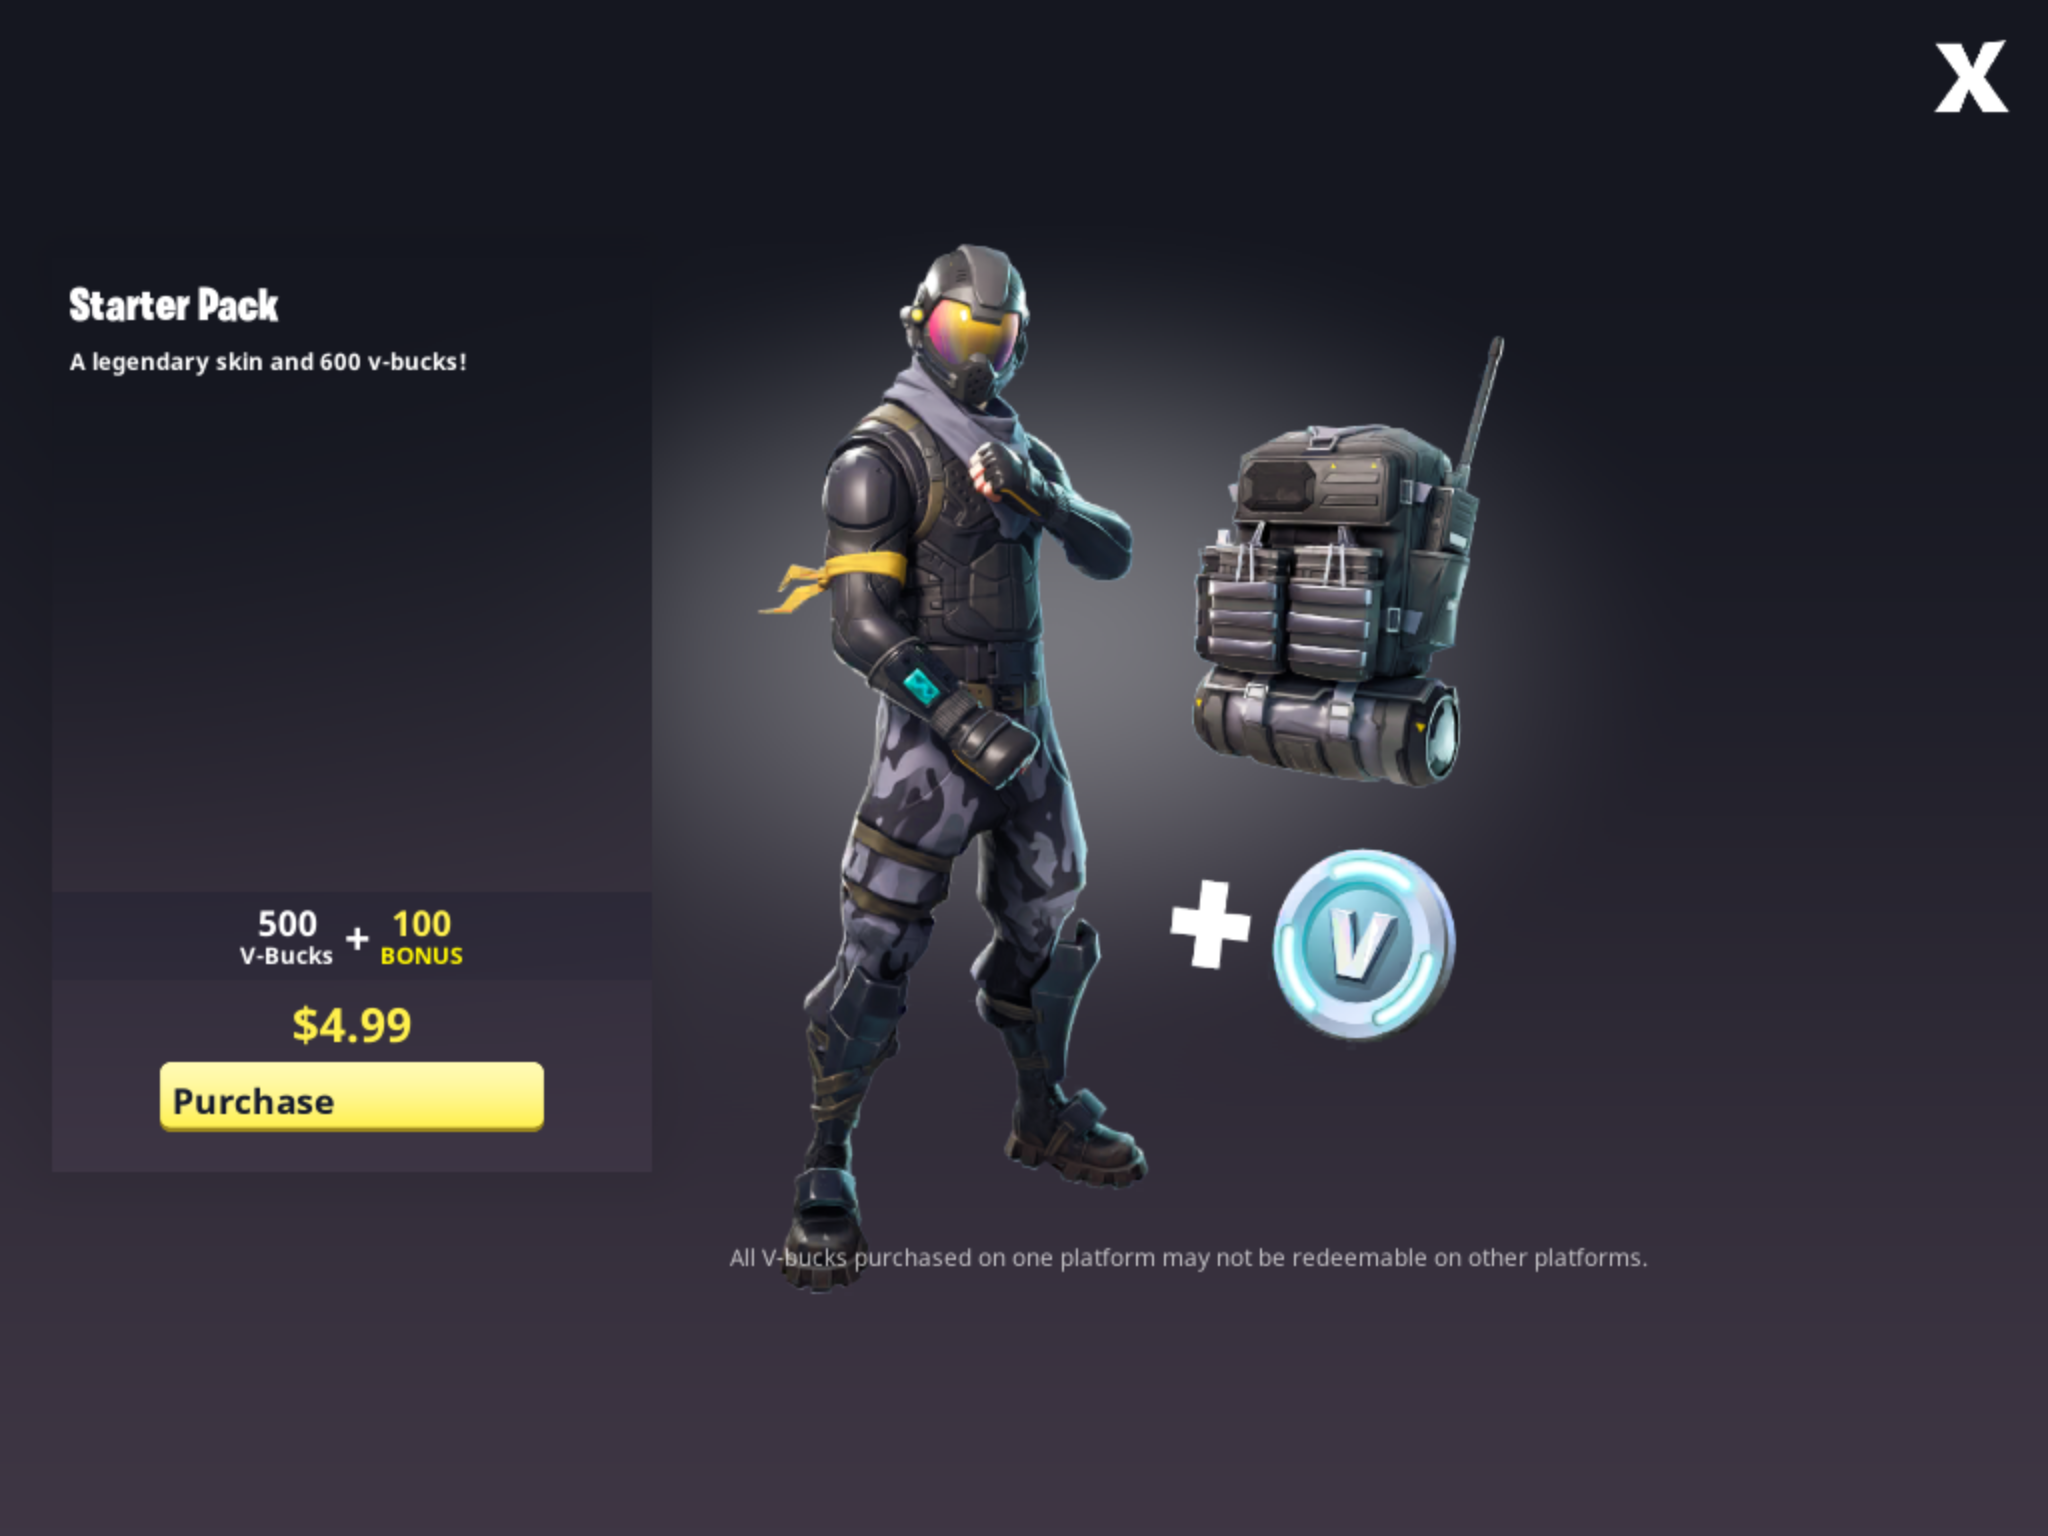 Fortnite Introduces Starter Pack With V Bucks And Outfit Toucharcade